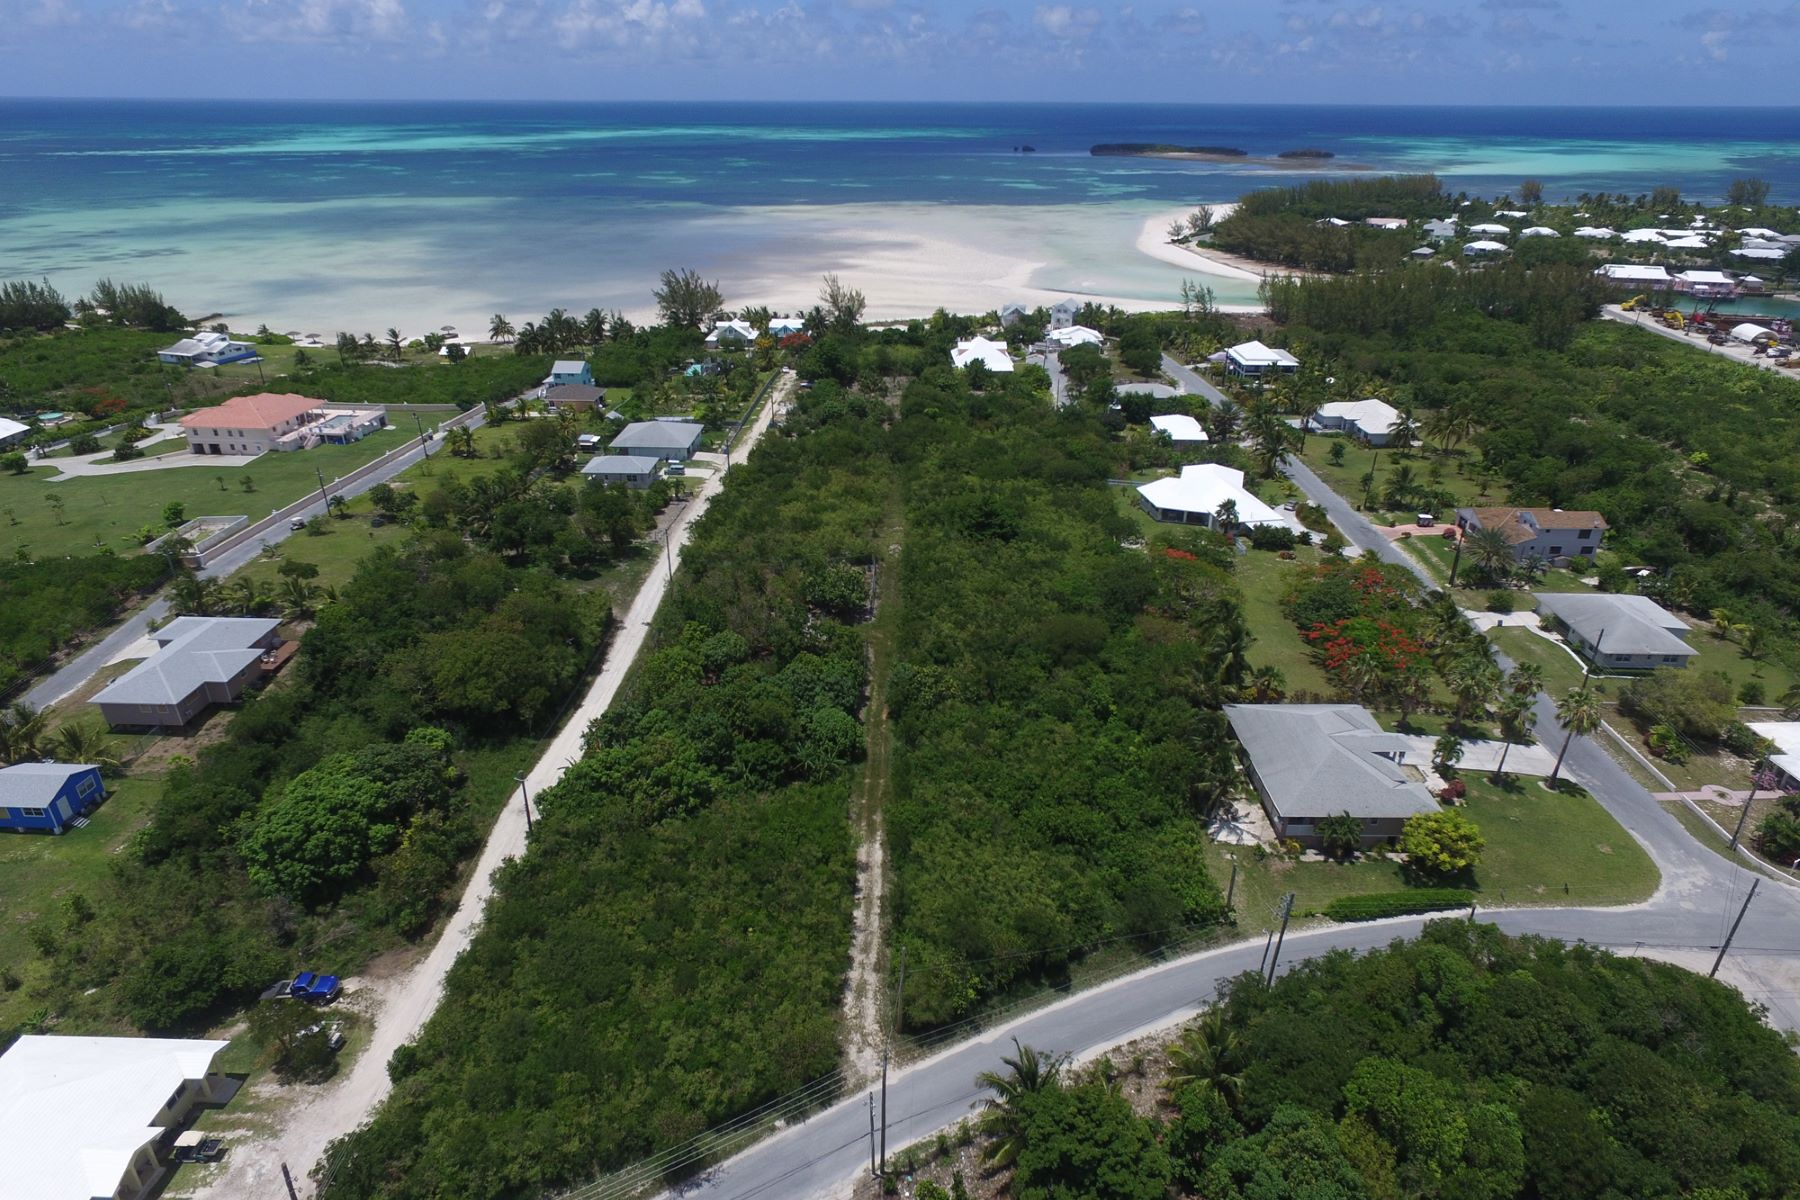 Land for Sale at Russell Island Acreage Russell Island, Spanish Wells, Eleuthera Bahamas